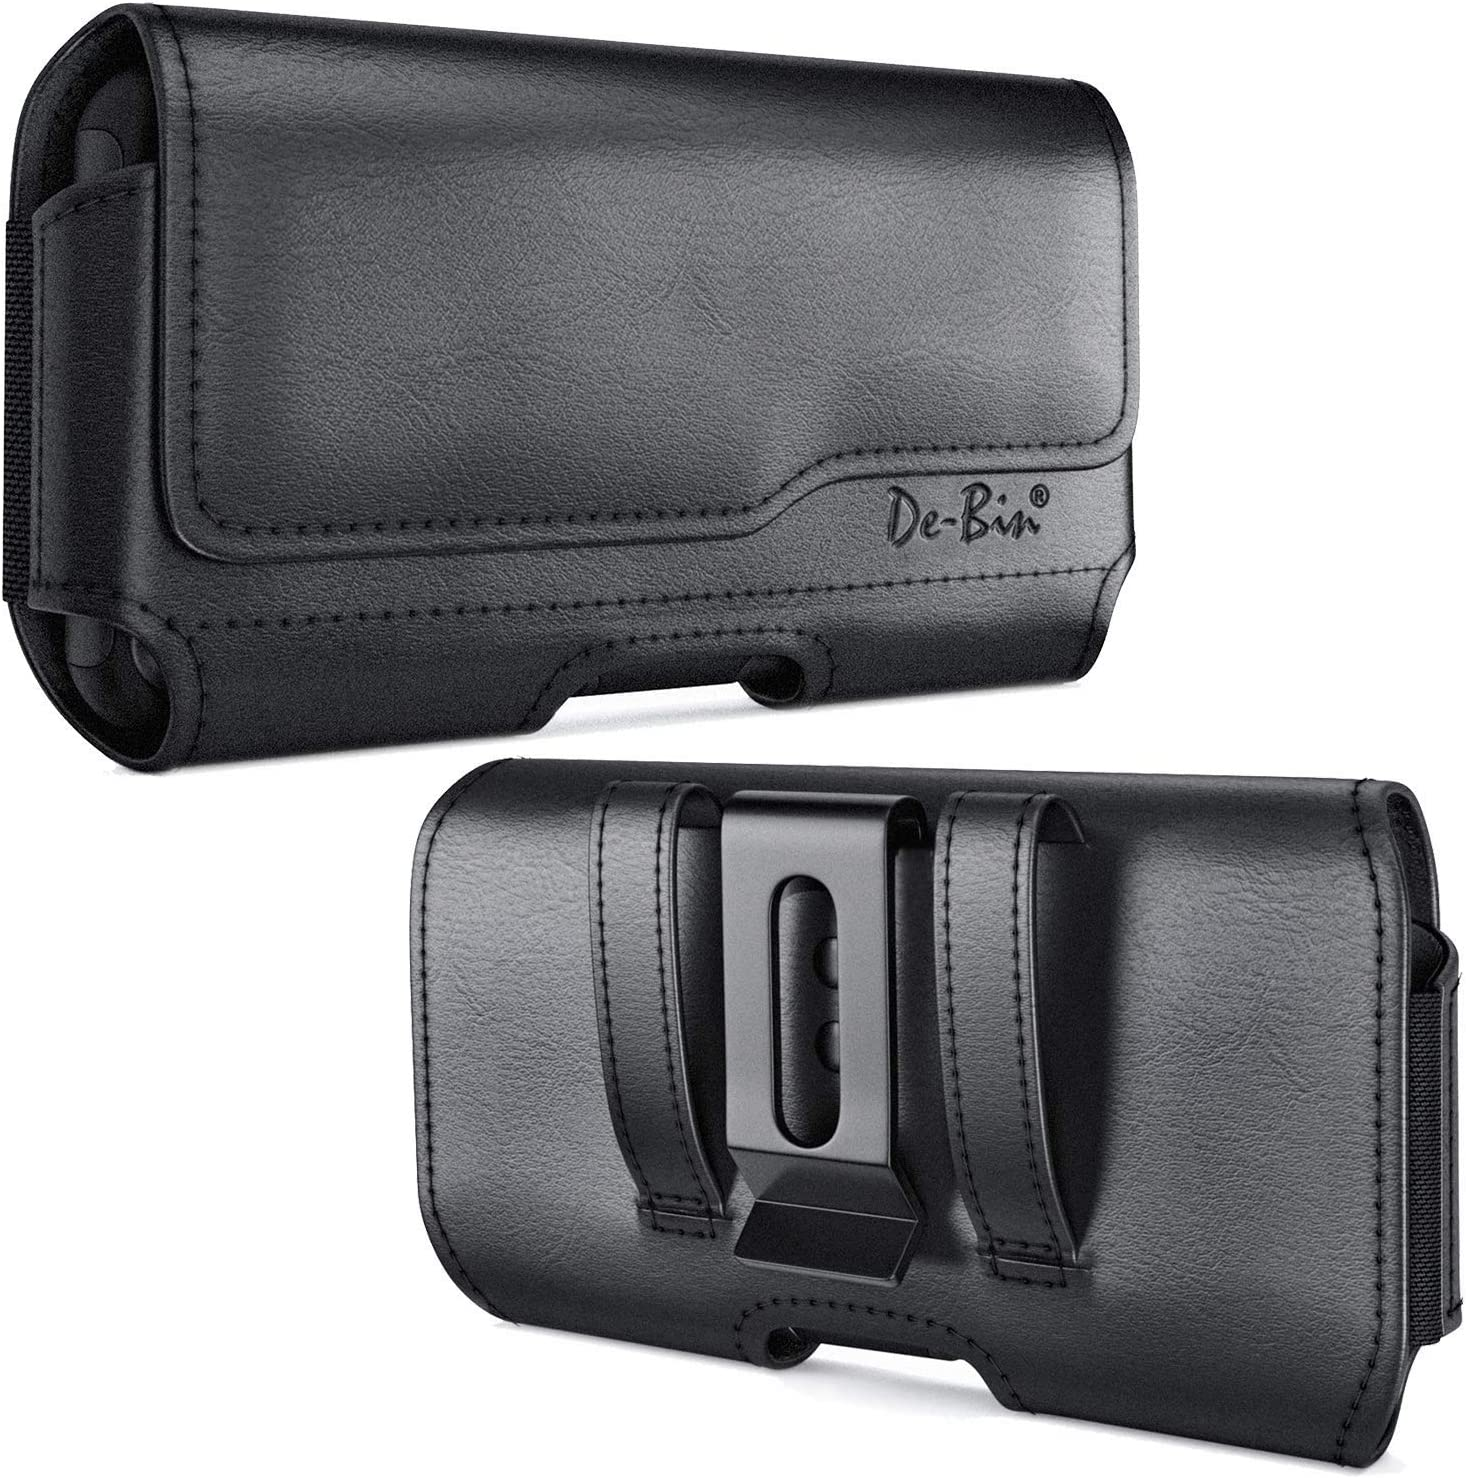 De-Bin Belt Holster Case Designed for Samsung Galaxy S10e/ S7/ S6/ S6 Edge Belt Case with Belt Clip and Belt Loop Carrying Pouch Phone Holder Fits Galaxy Phone Compatible with Otterbox Battery Case on